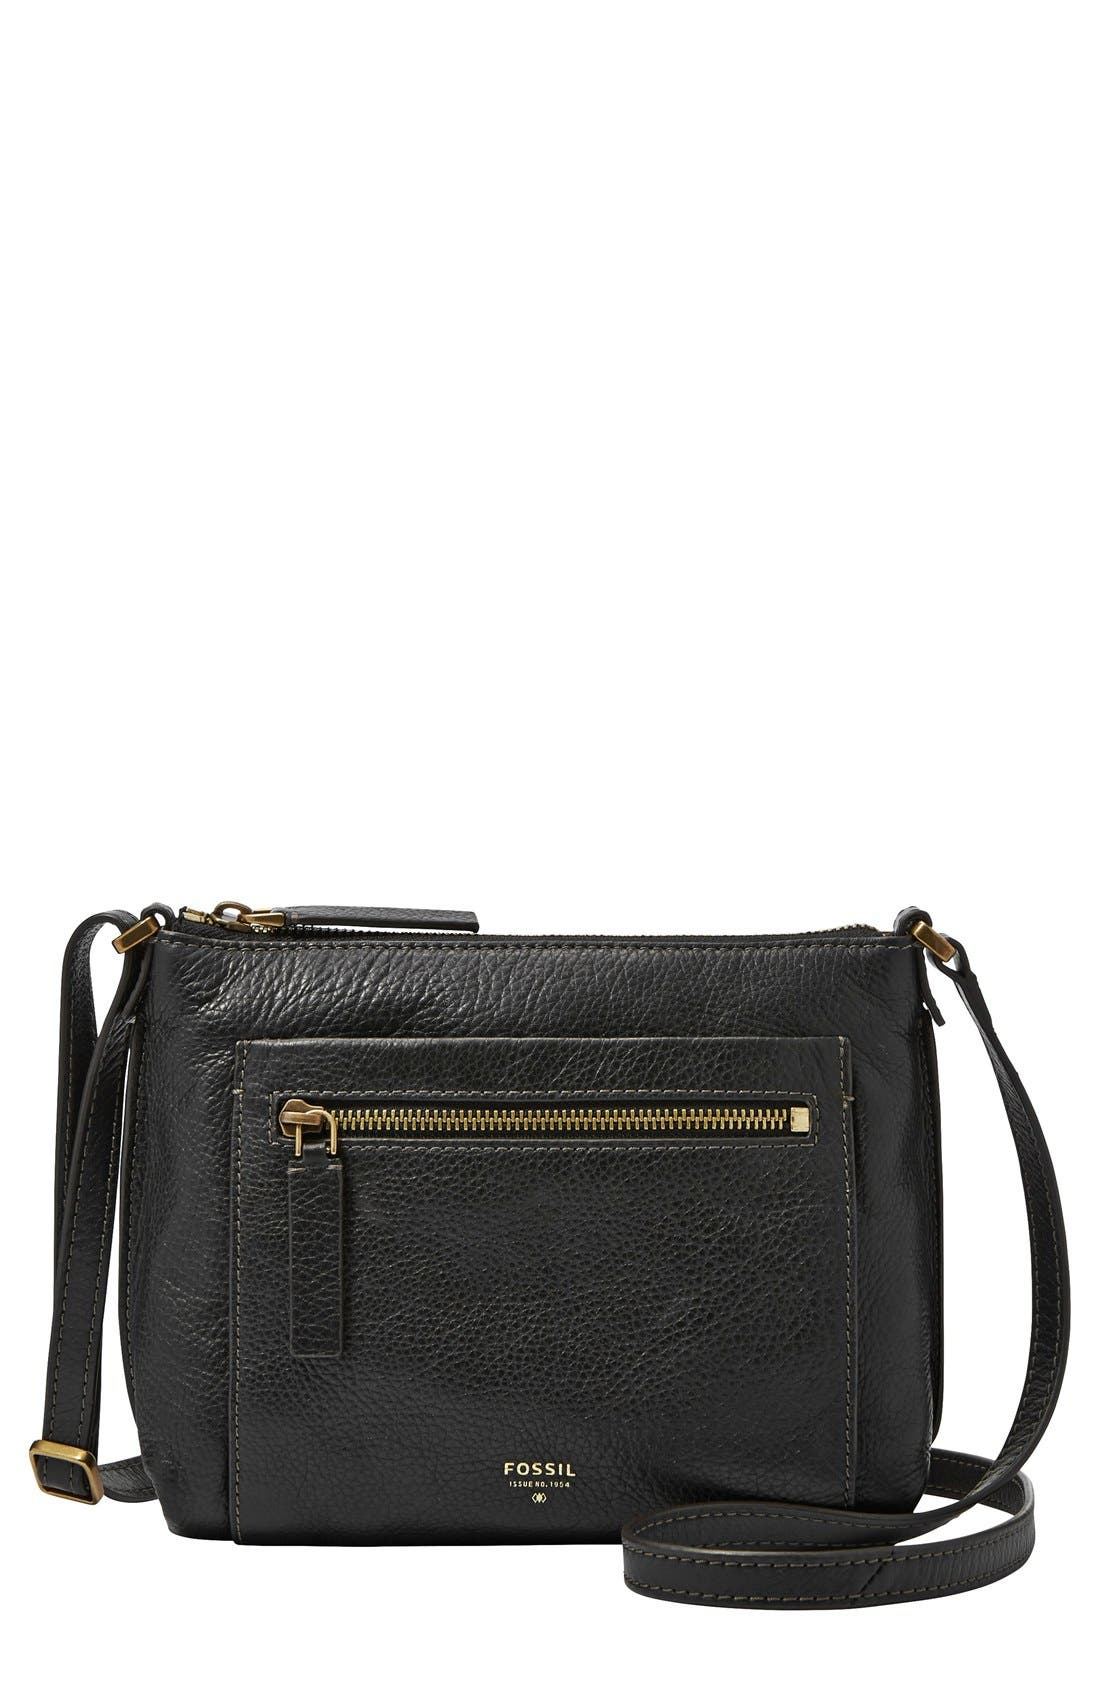 'Vickery' Leather Crossbody Bag,                         Main,                         color, 001